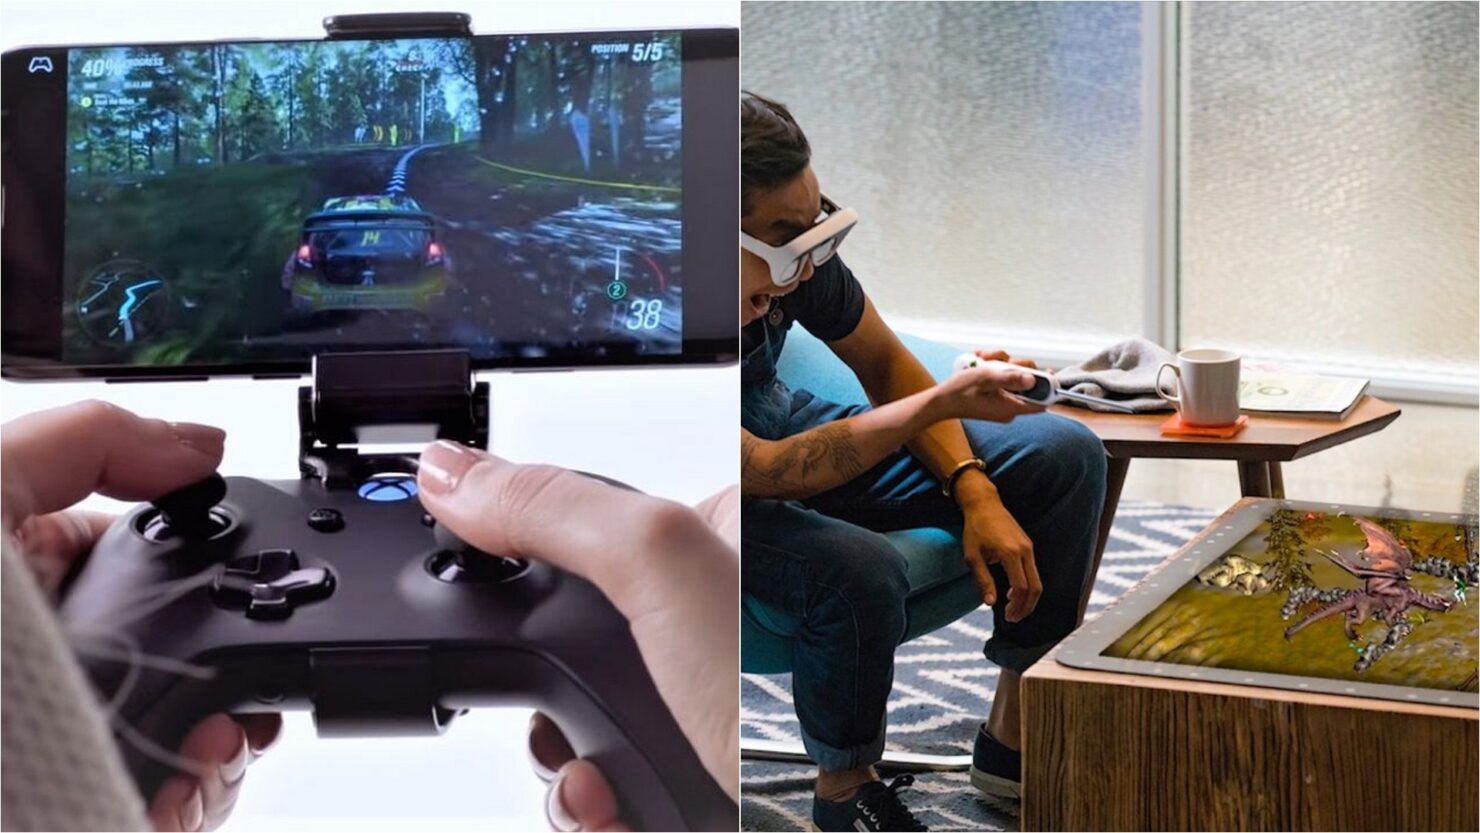 Cloud gaming and Augmented Reality